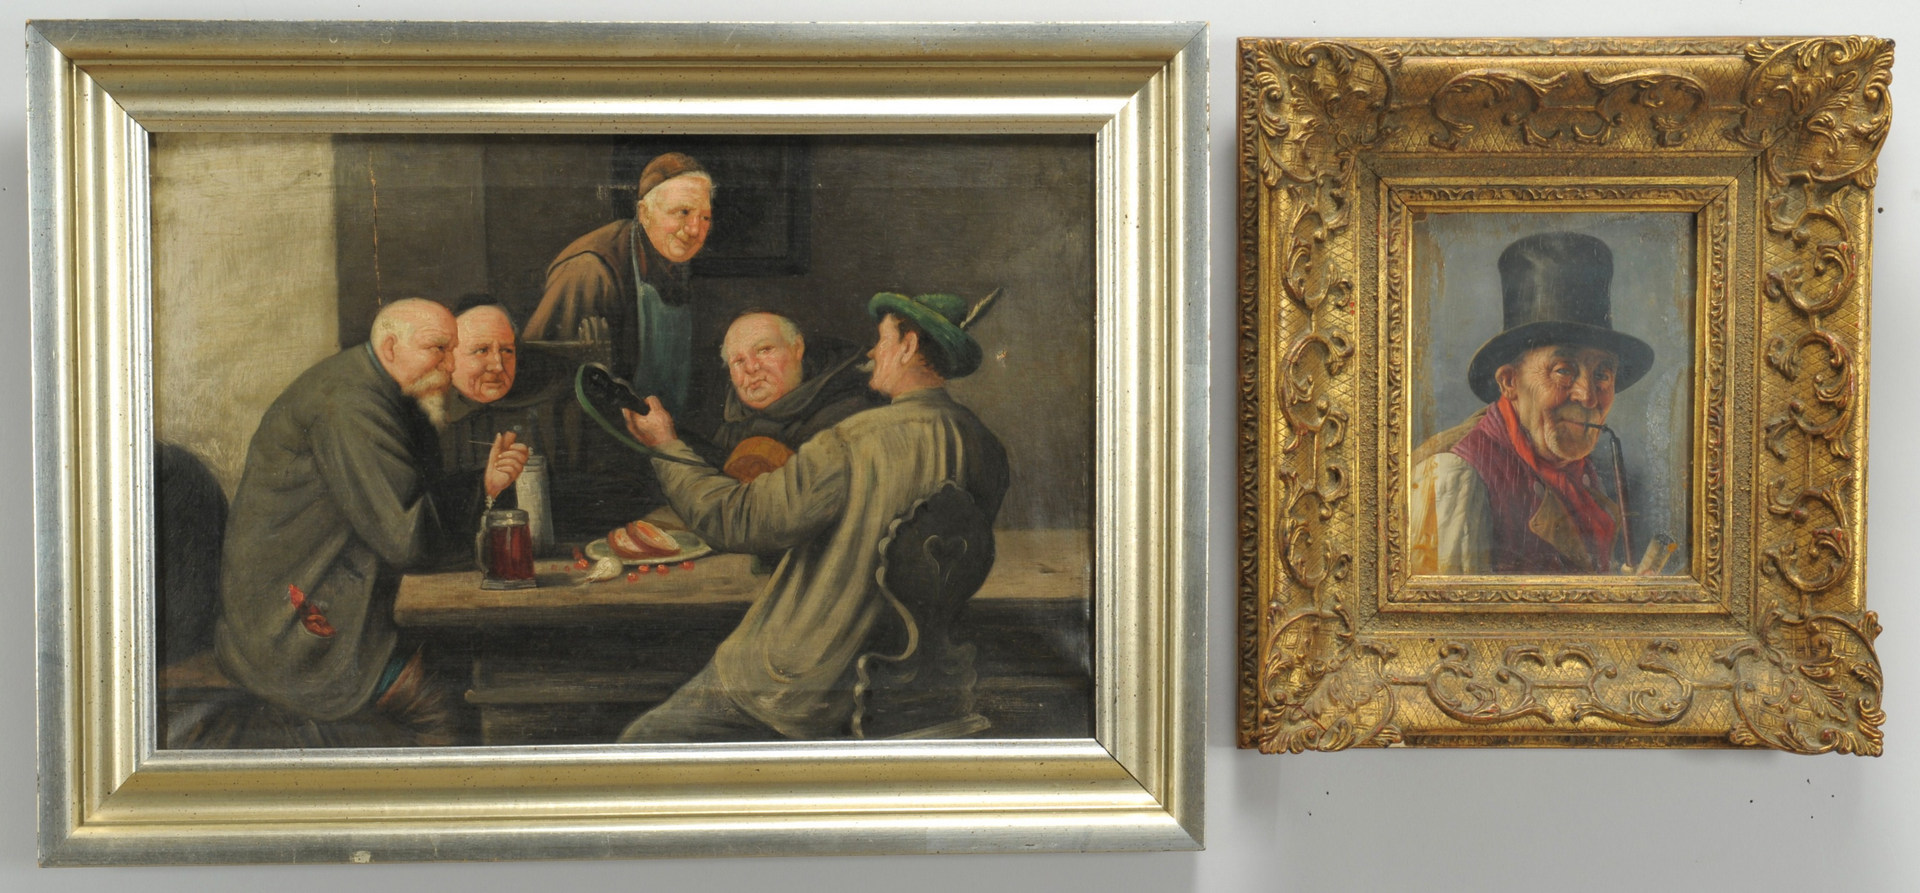 Lot 349: Grouping of two European paintings